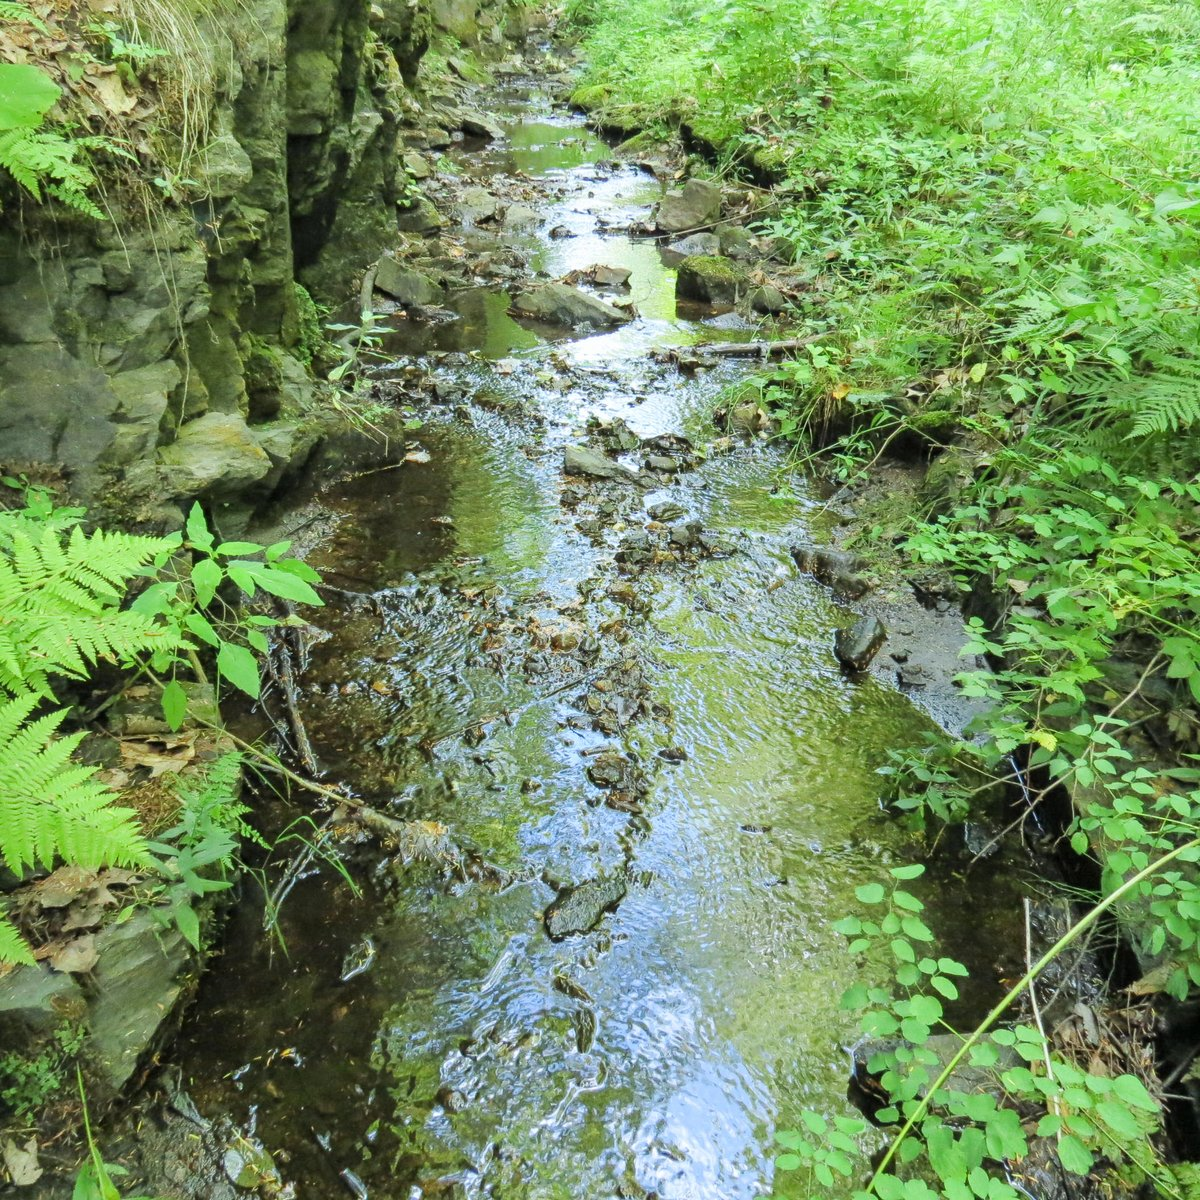 8. Drainage Ditch